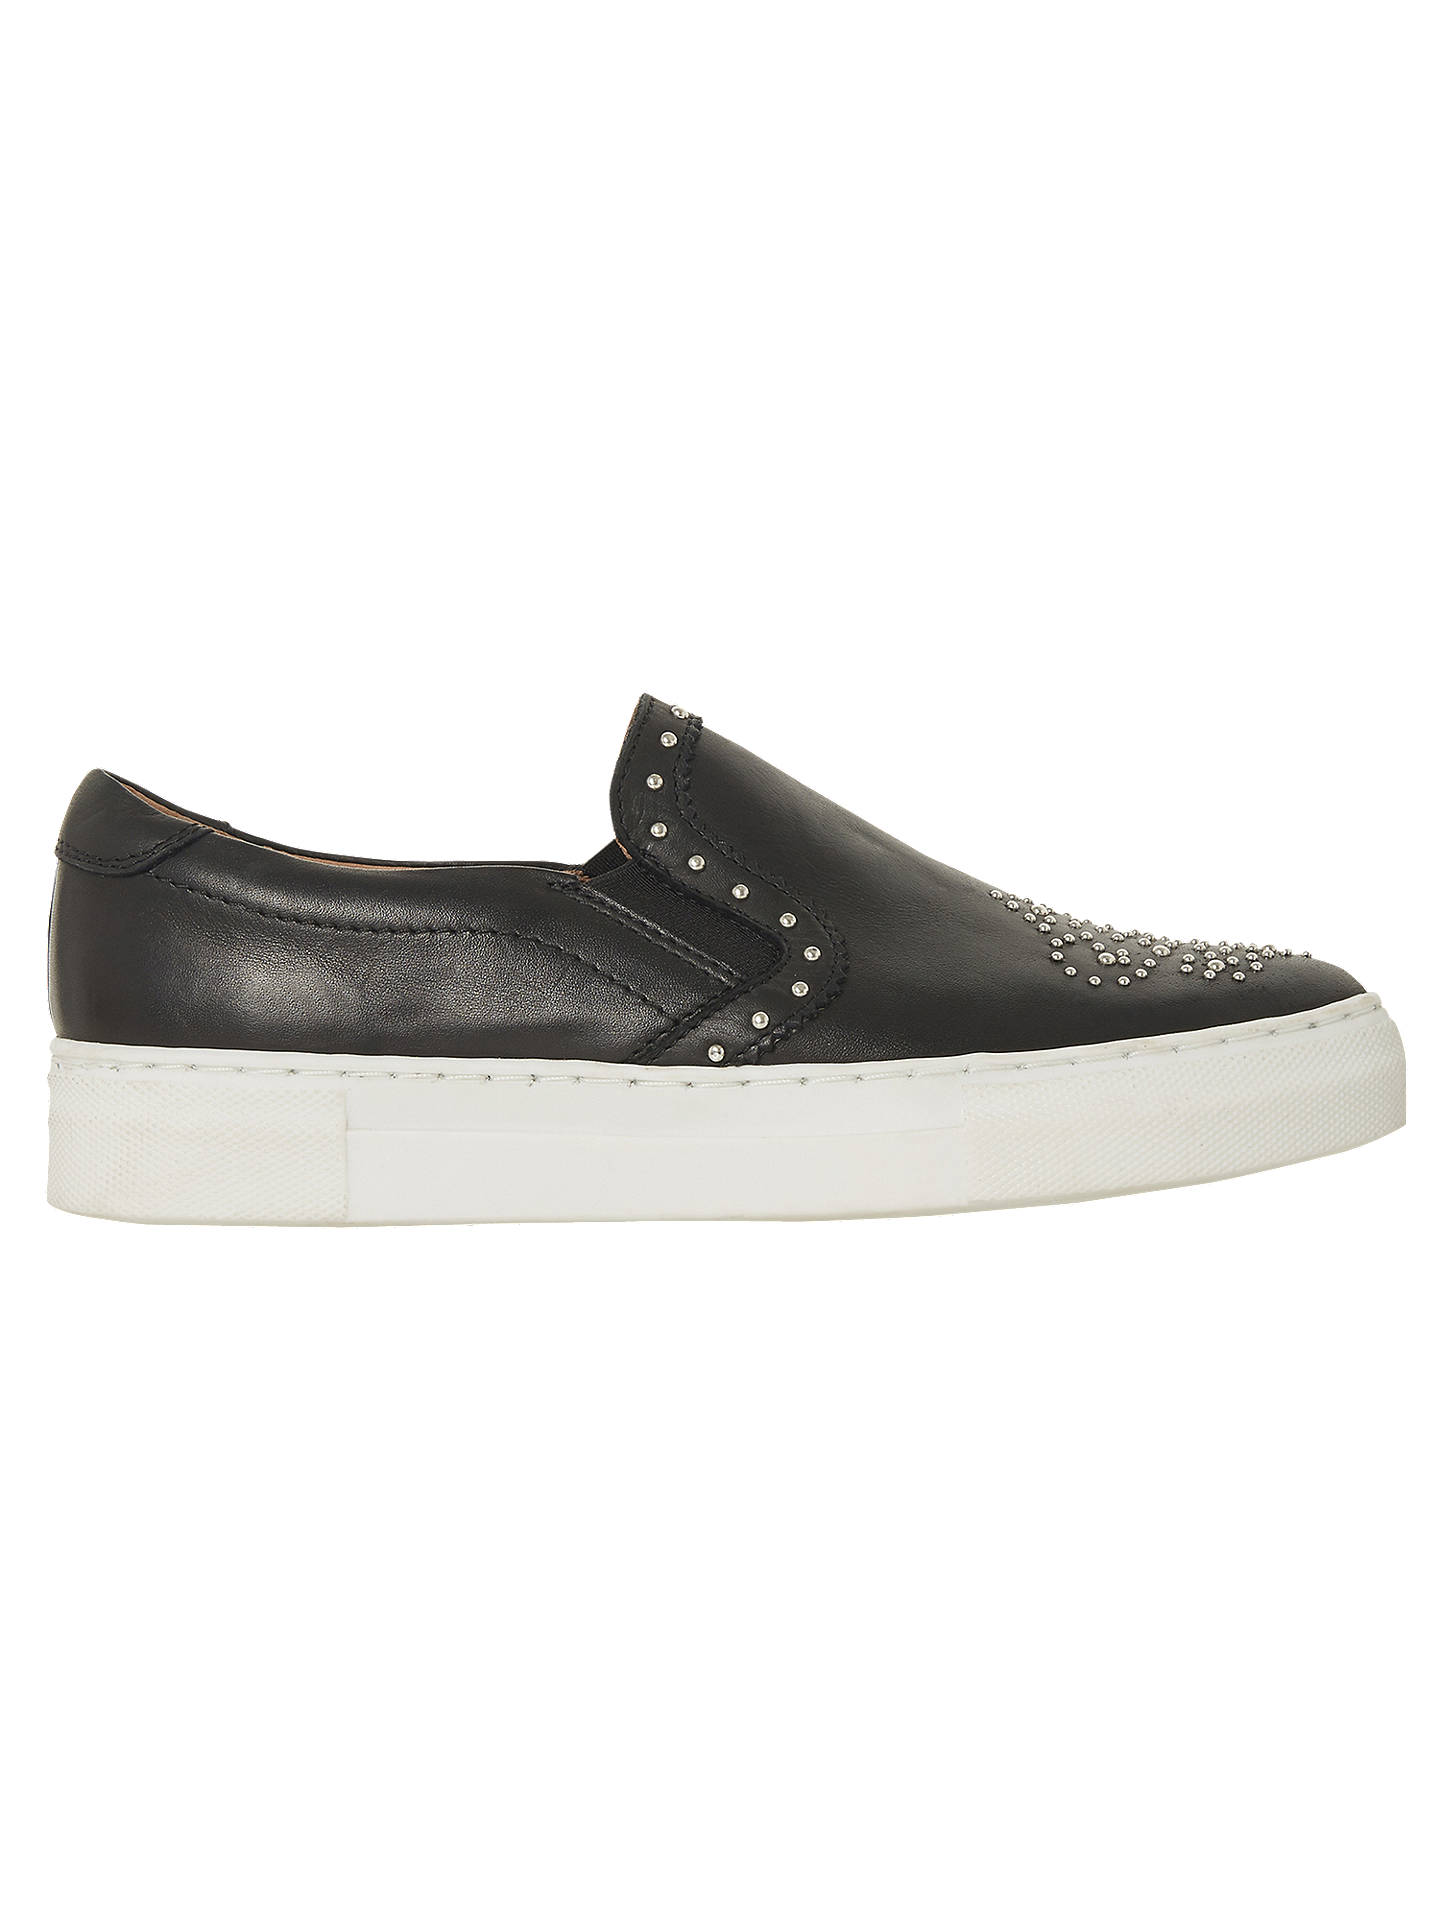 BuyBertie Edreen Slip On Stud Trainers, Black Leather, 3 Online at johnlewis.com